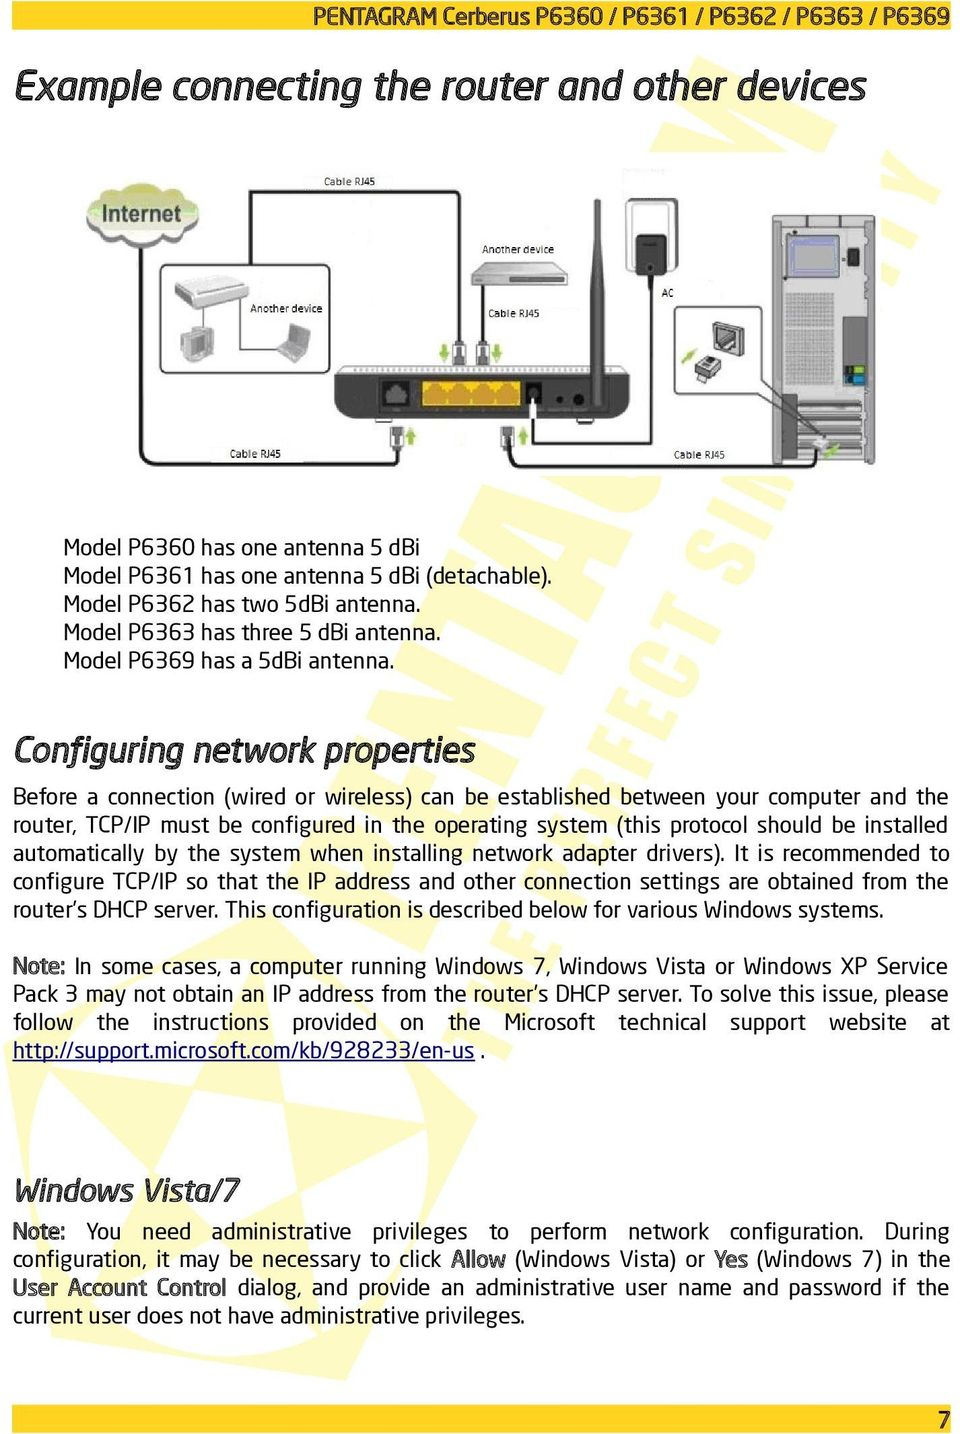 Configuring network properties Before a connection (wired or wireless) can be established between your computer and the router, TCP/IP must be configured in the operating system (this protocol should